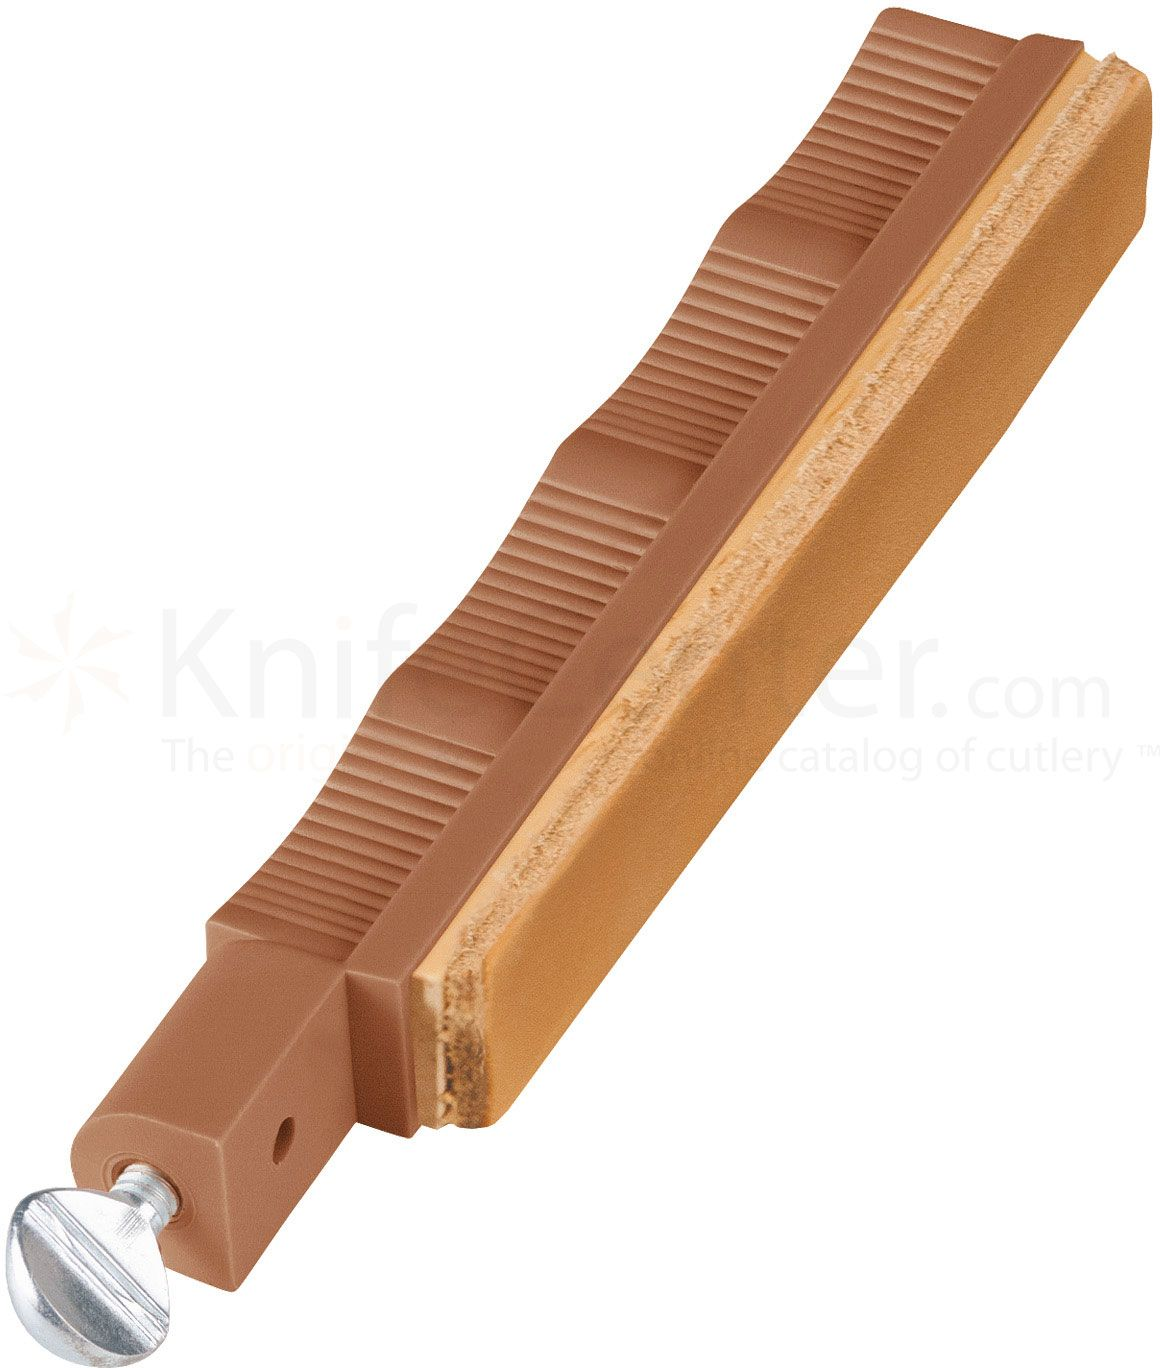 Lansky Leather Stropping Hone - Brown Holder